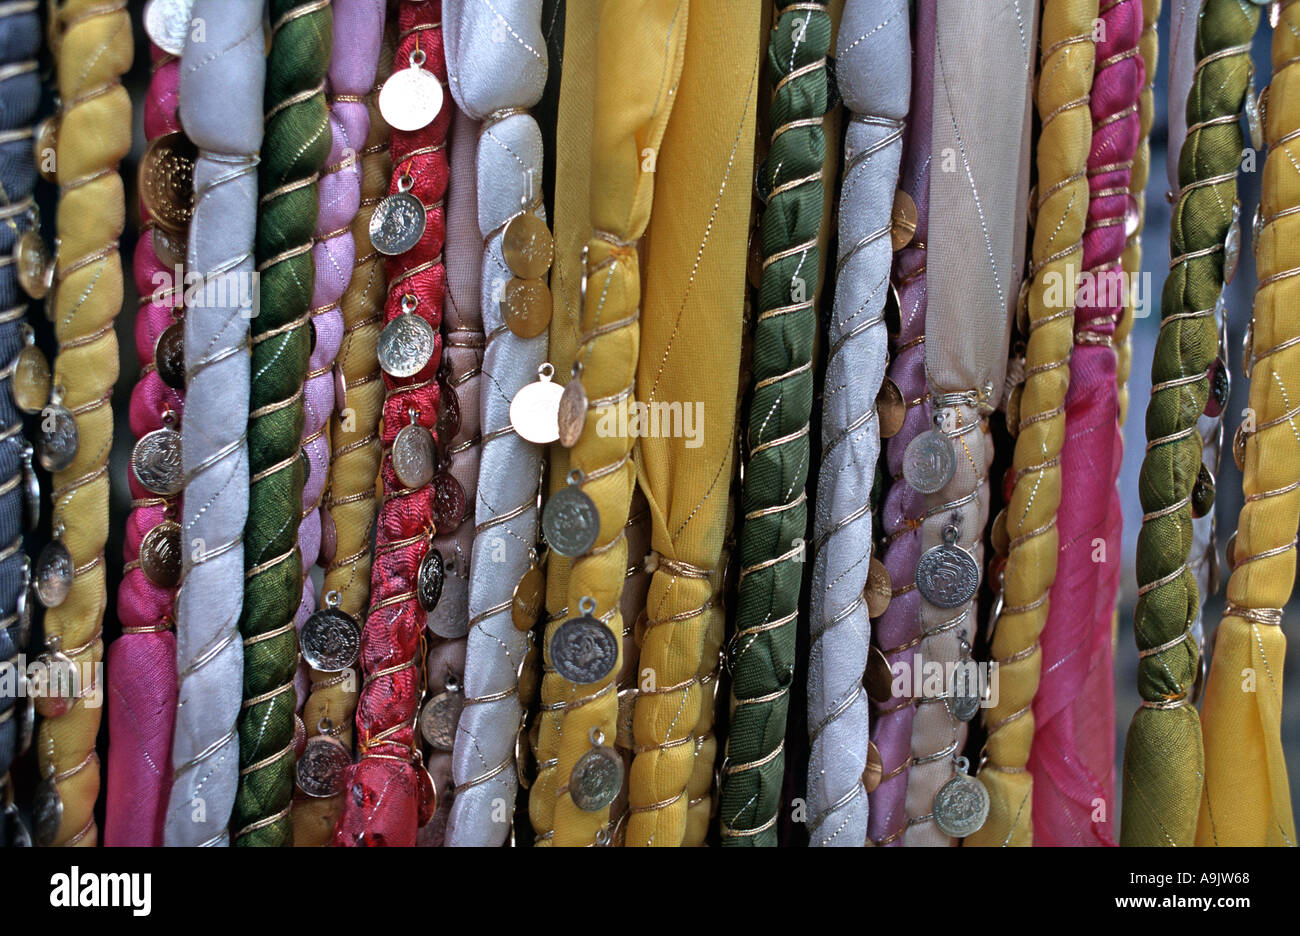 Detail of stacks of braided silk ribbons with applique coin decoration for sale at souvenir market in Turkey - Stock Image